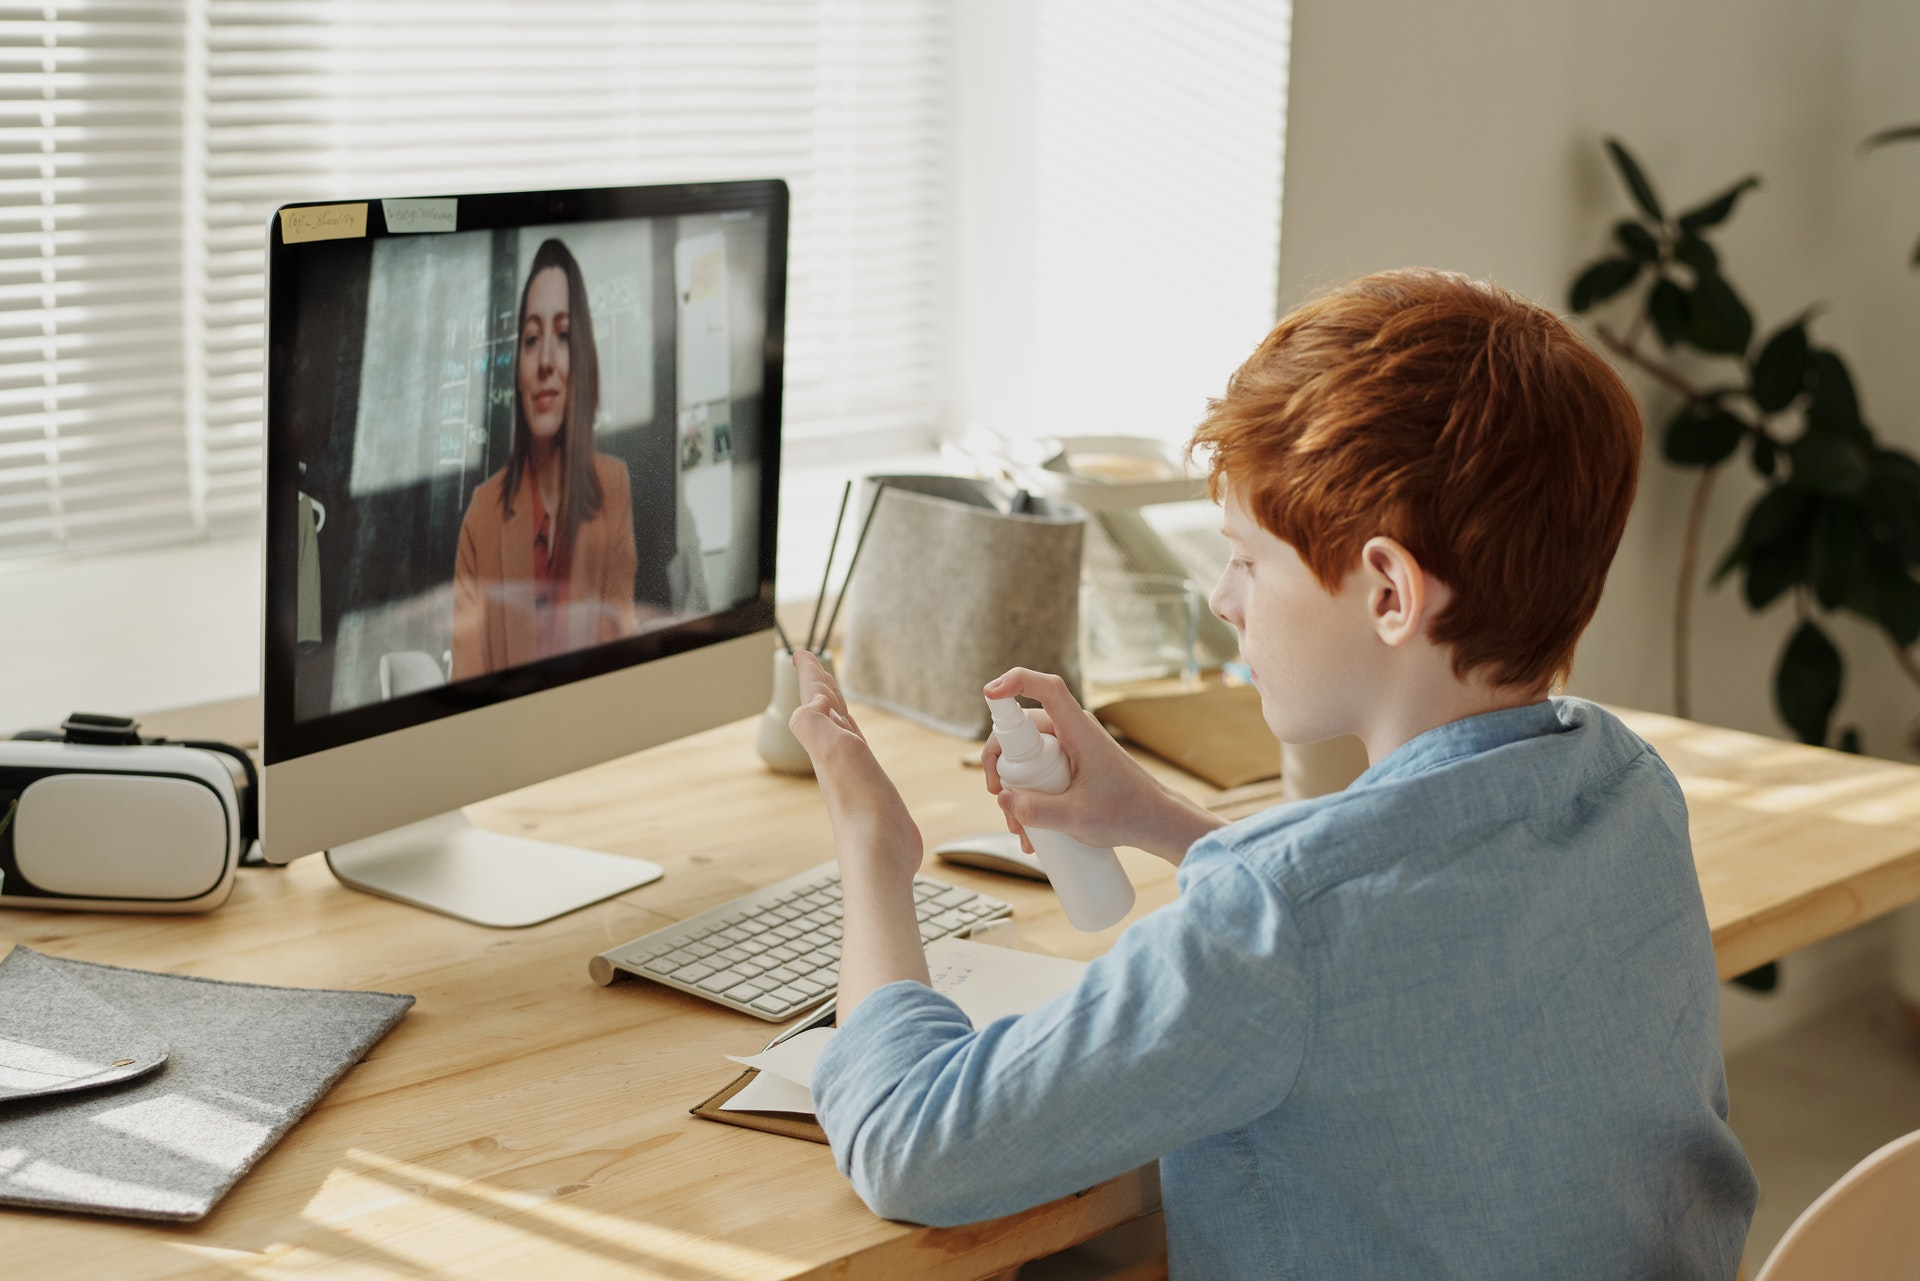 Tips for Helping Students Overcome Remote Learning Issues